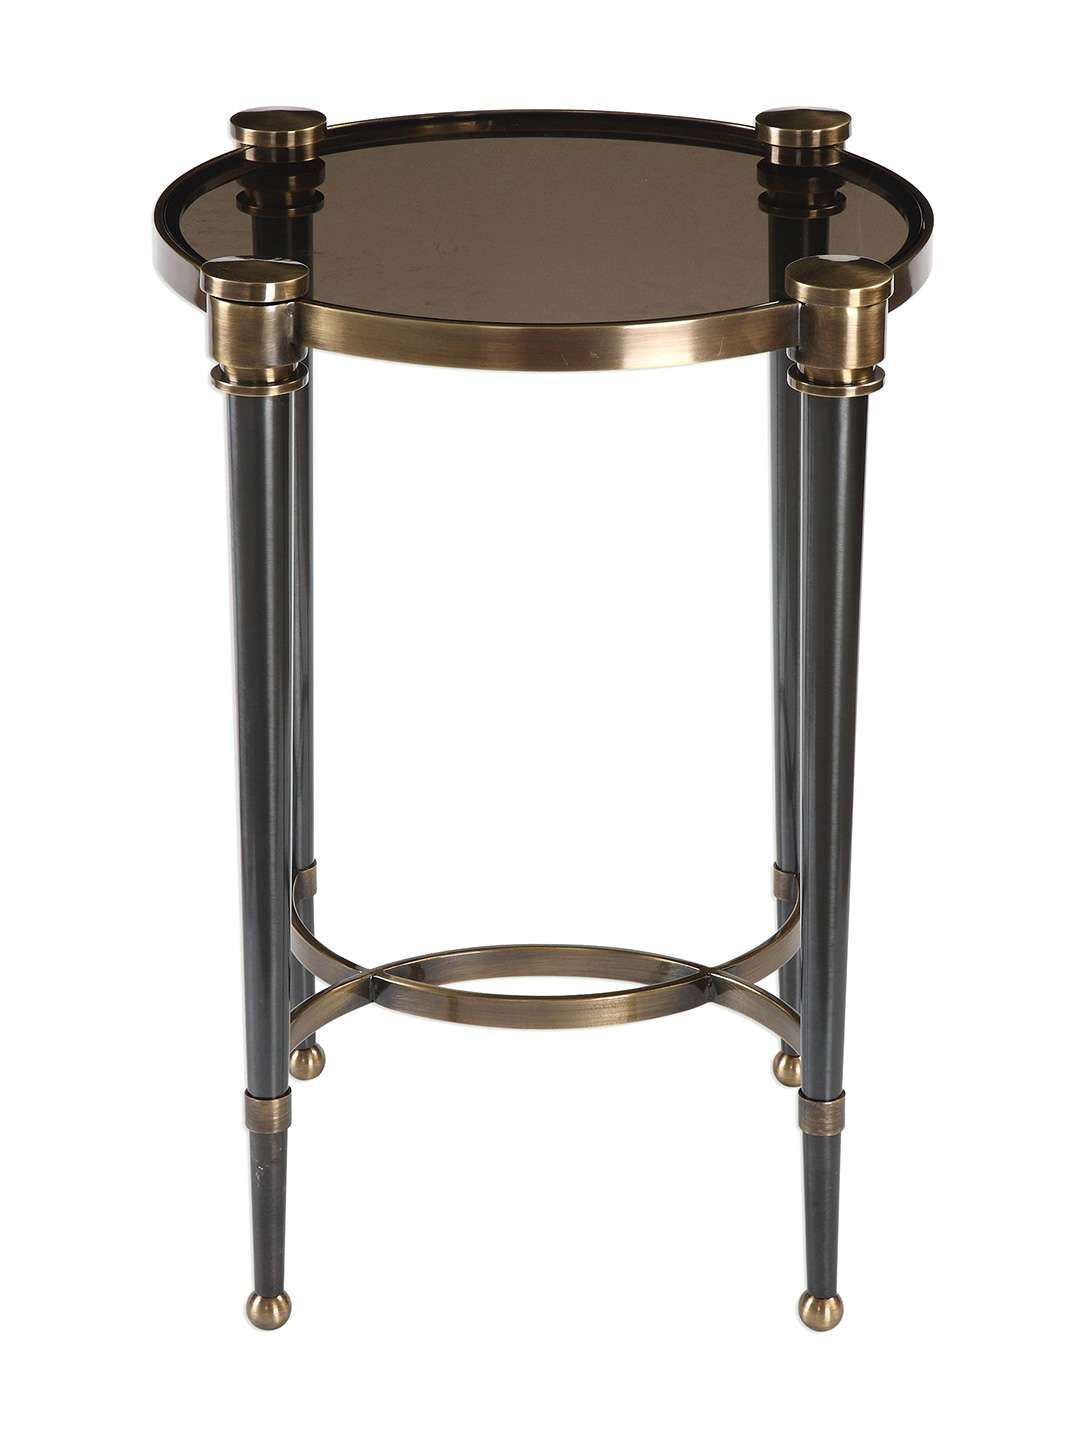 uttermost thora round accent table iron top glass features brushed tapered legs assembly required measurements dark wood side all modern nautical lights brielle furniture west elm